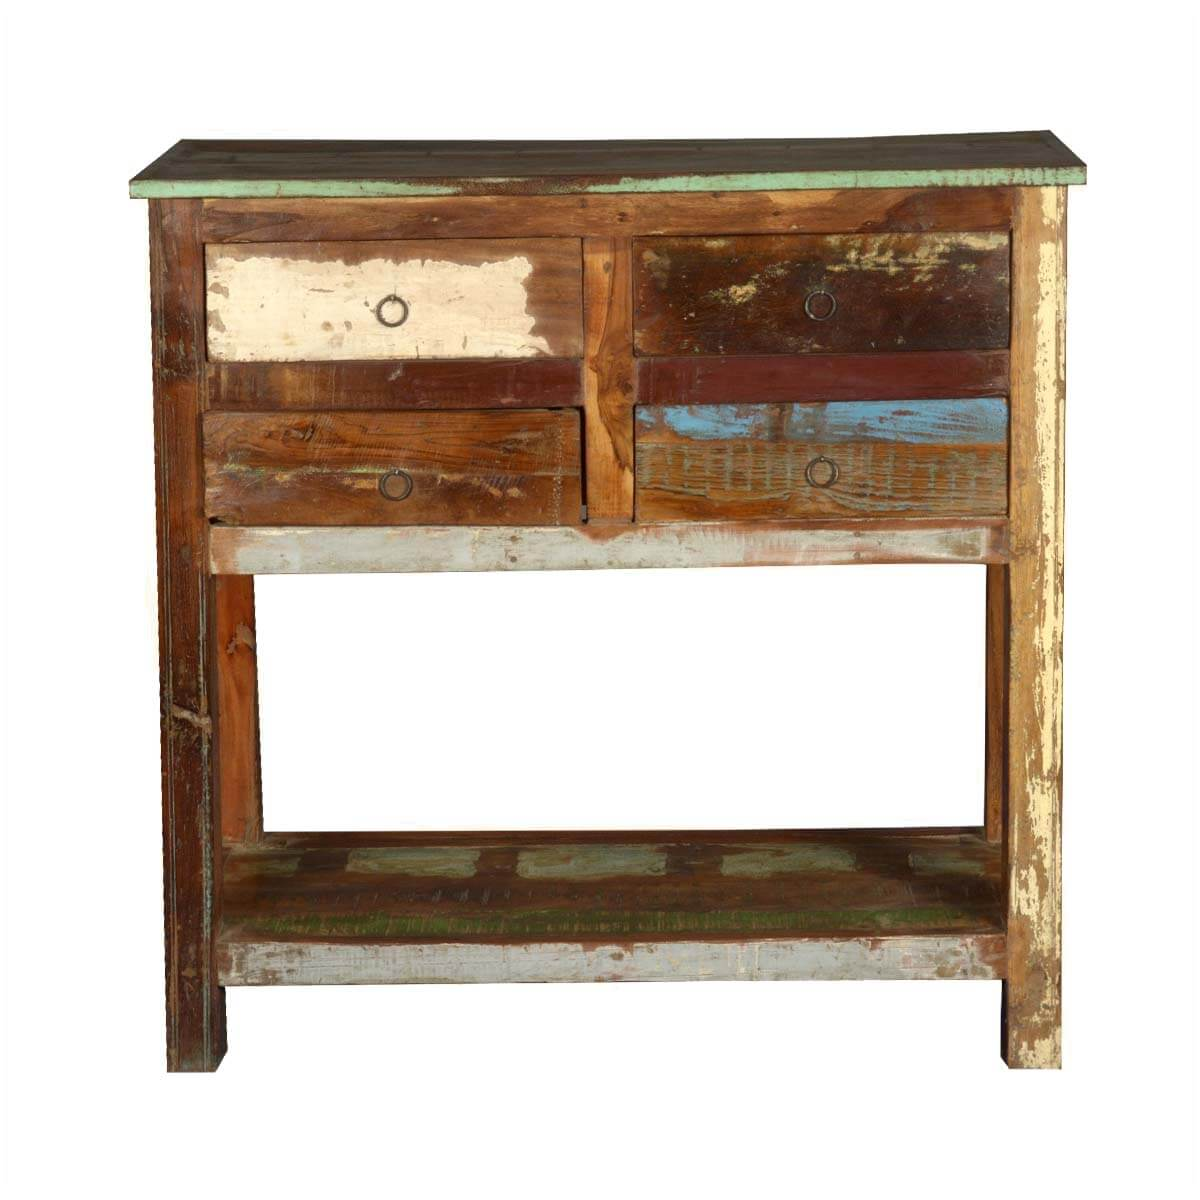 Marvelous photograph of  & Hall Tables 2 Tier Reclaimed Wood Console Table with 4 Drawers with #A17F2A color and 1200x1200 pixels